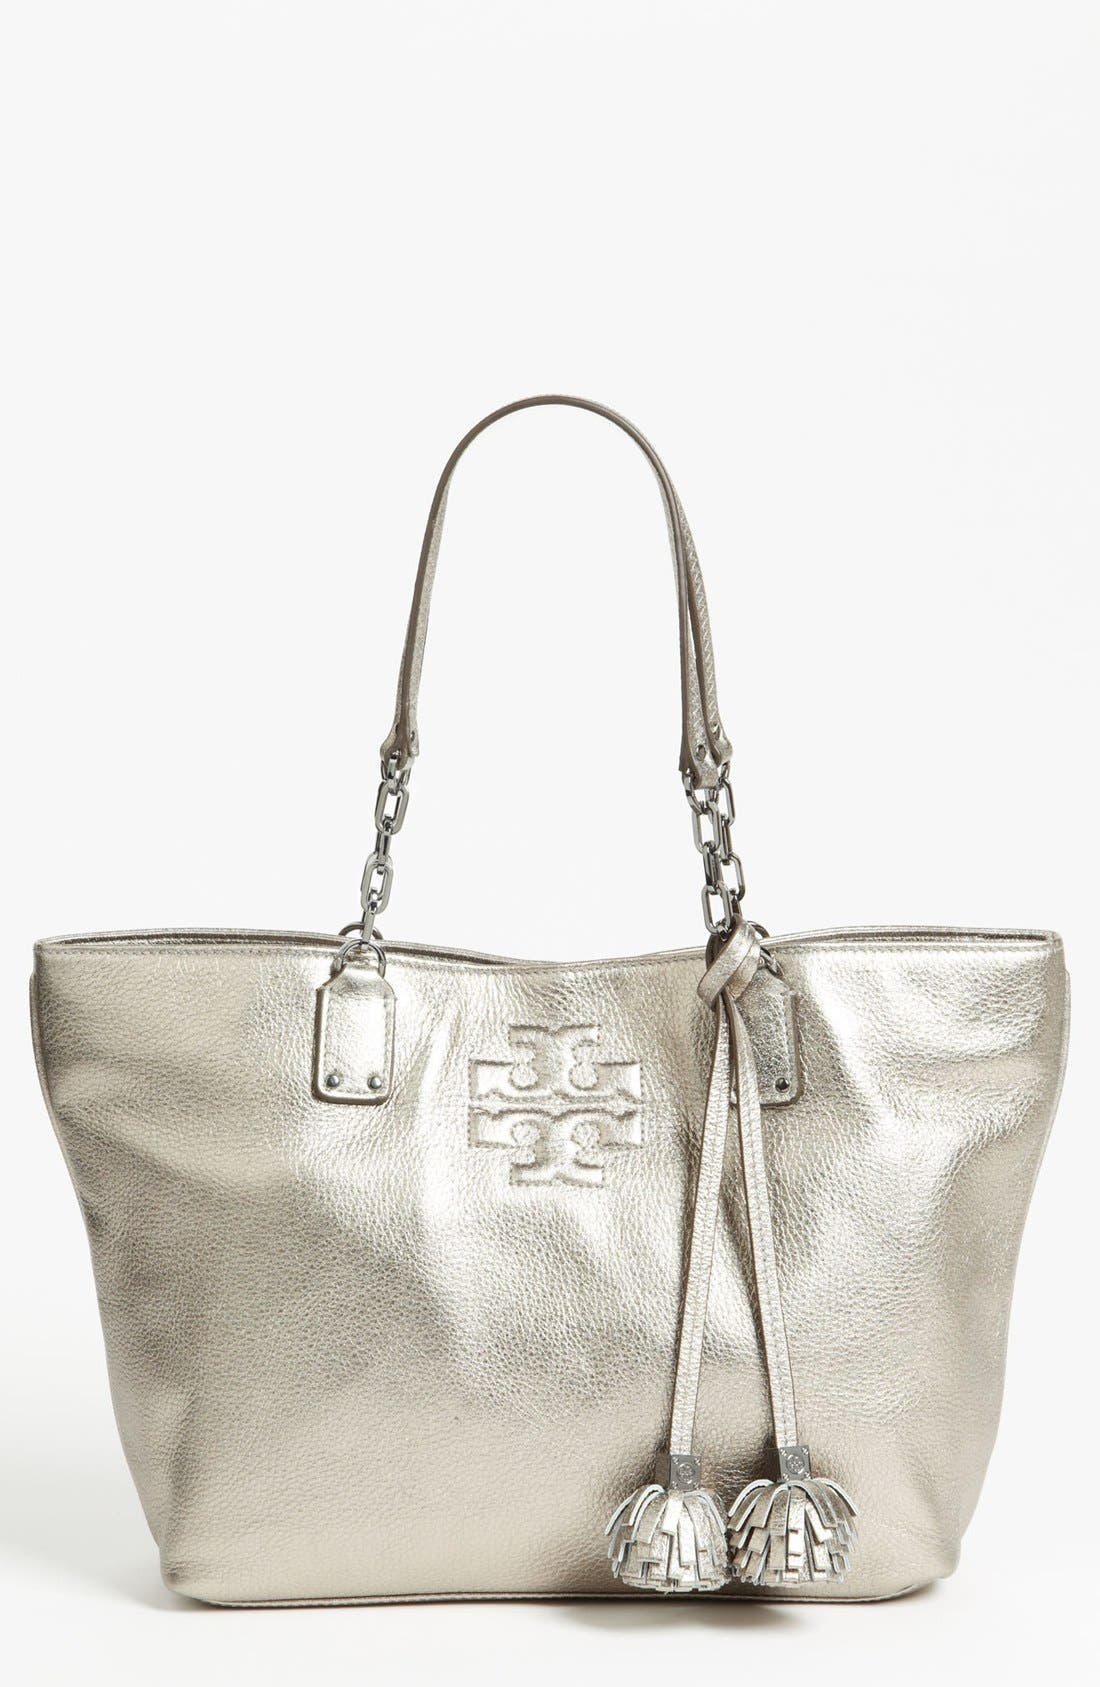 Alternate Image 1 Selected - Tory Burch 'Thea Metallic - Small' Leather Tote